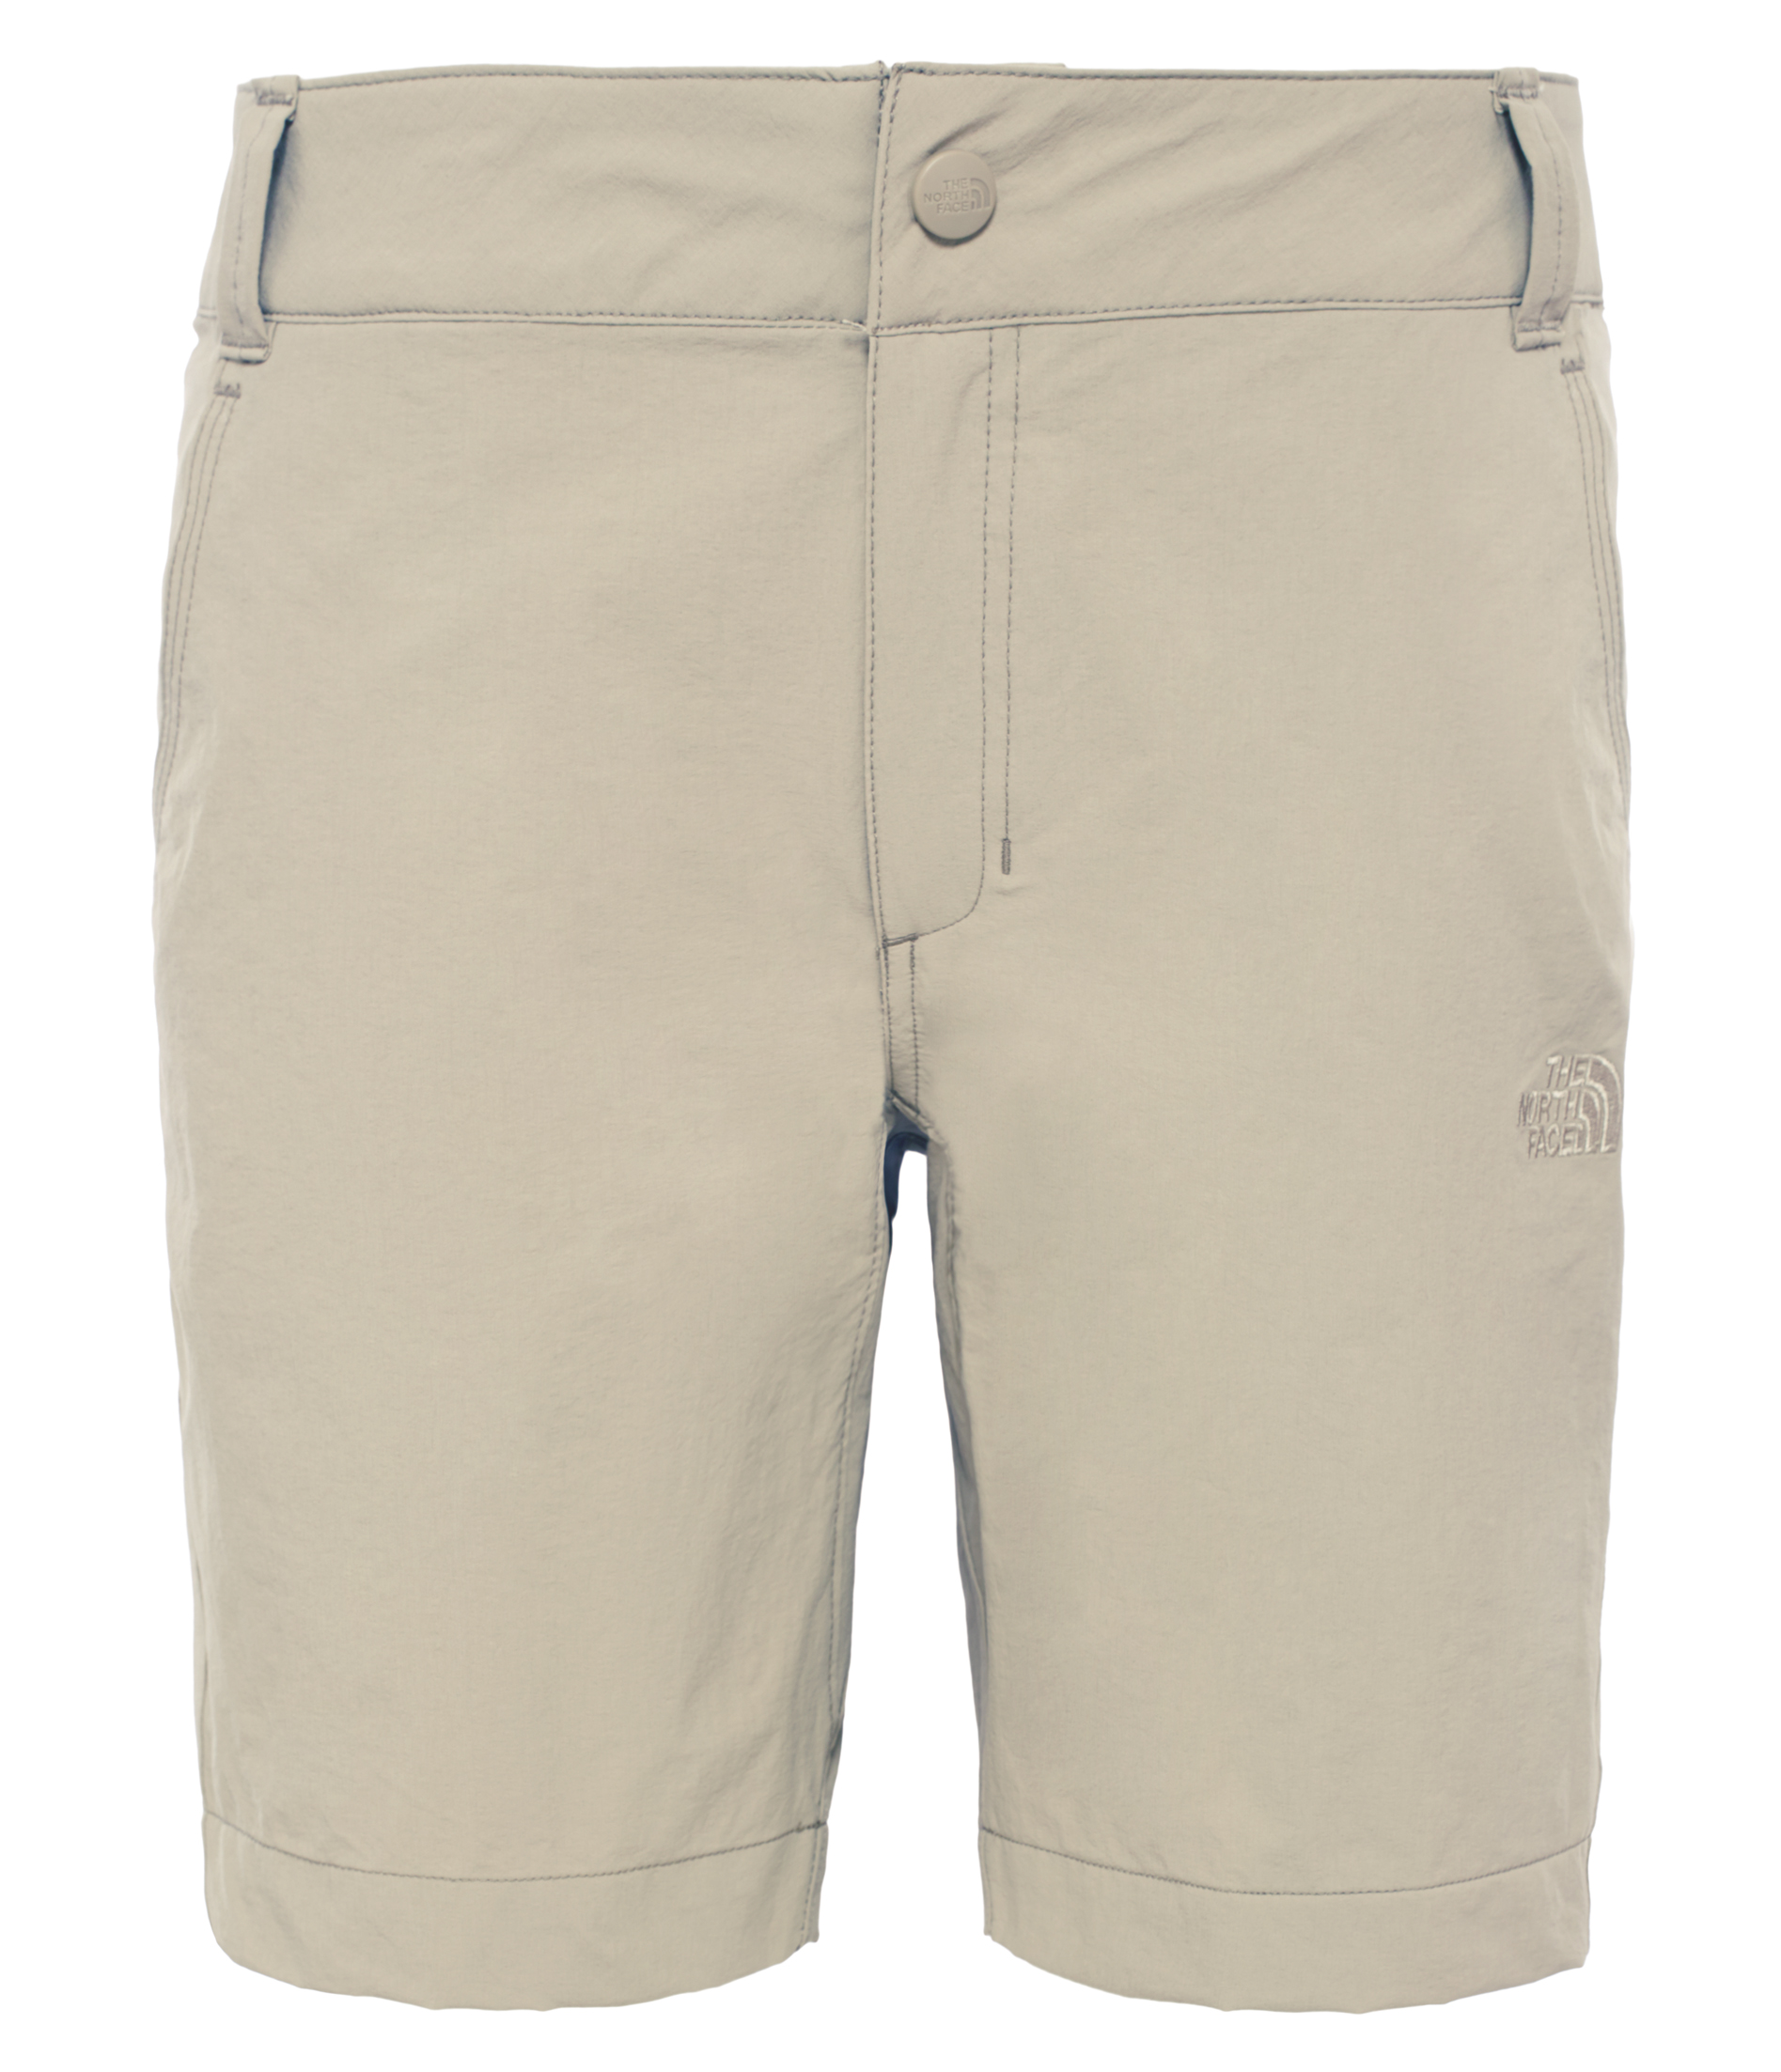 THE NORTH FACE W EXPLORATION SHORT, DUNE BEIGE velikost: 8